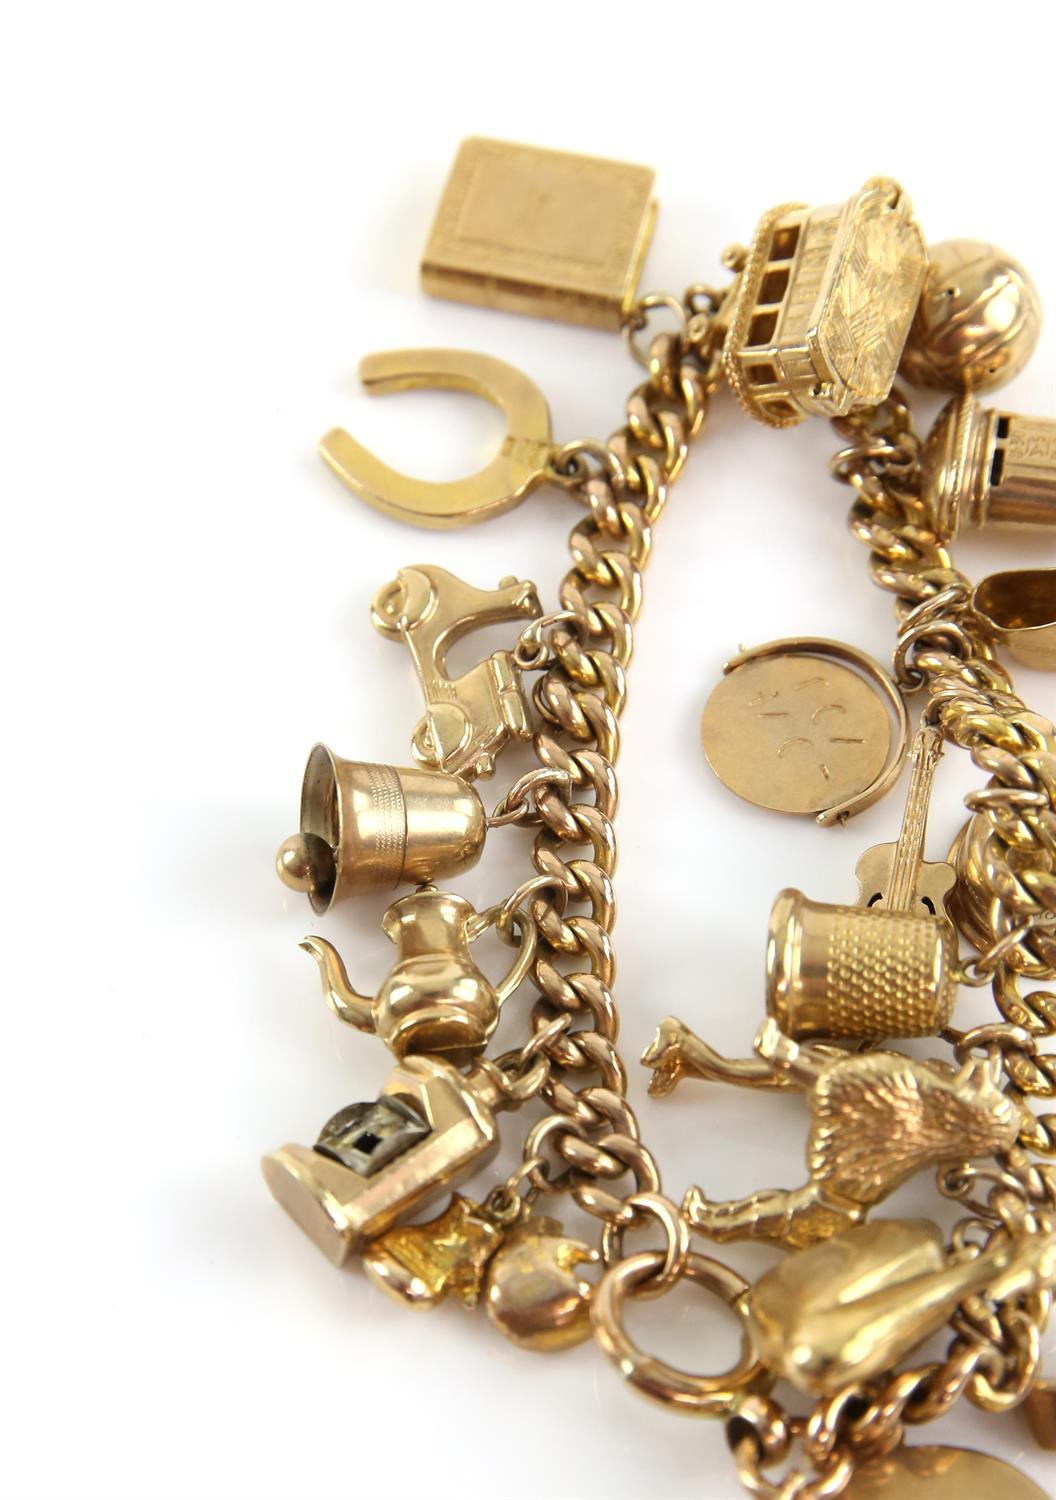 Gold curb link bracelet, large bolt ring clasp, with twenty-one vintage charms attached, - Image 3 of 3